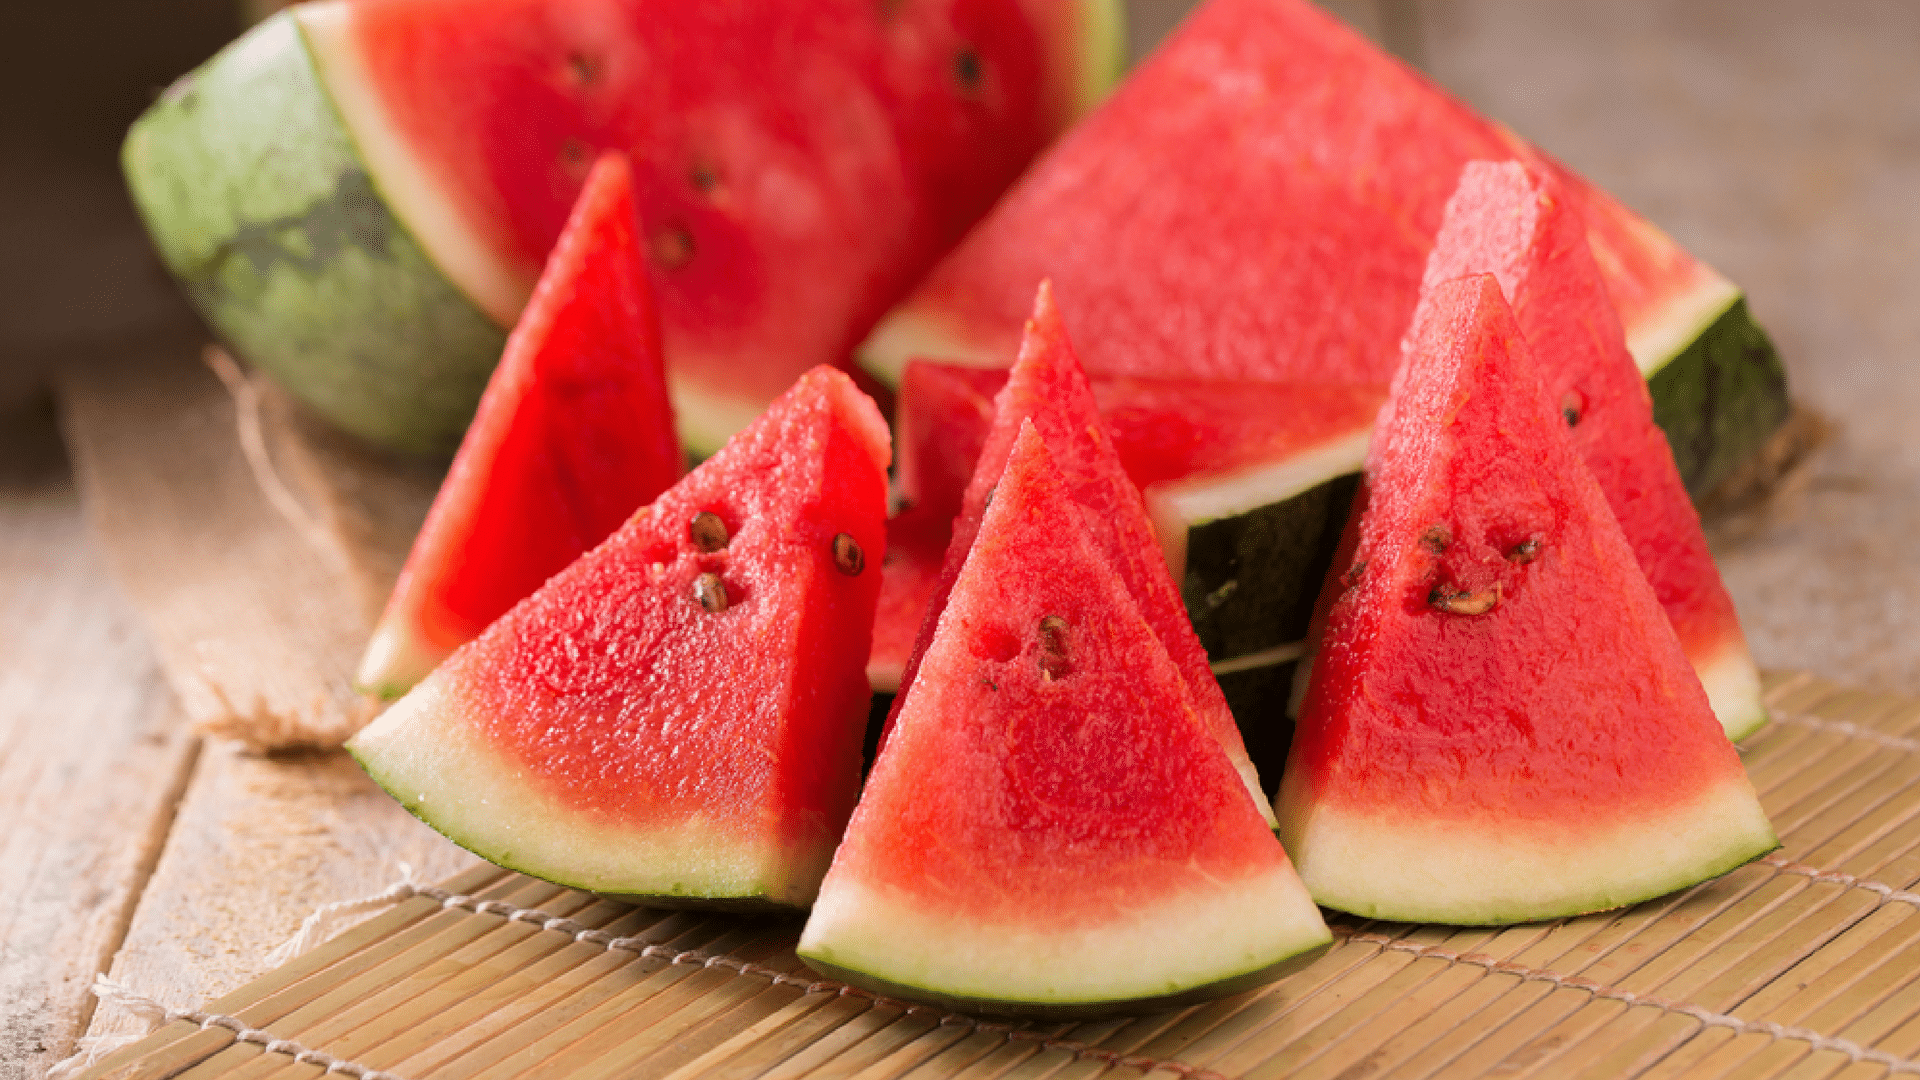 What Are The Different Types Of watermelon?